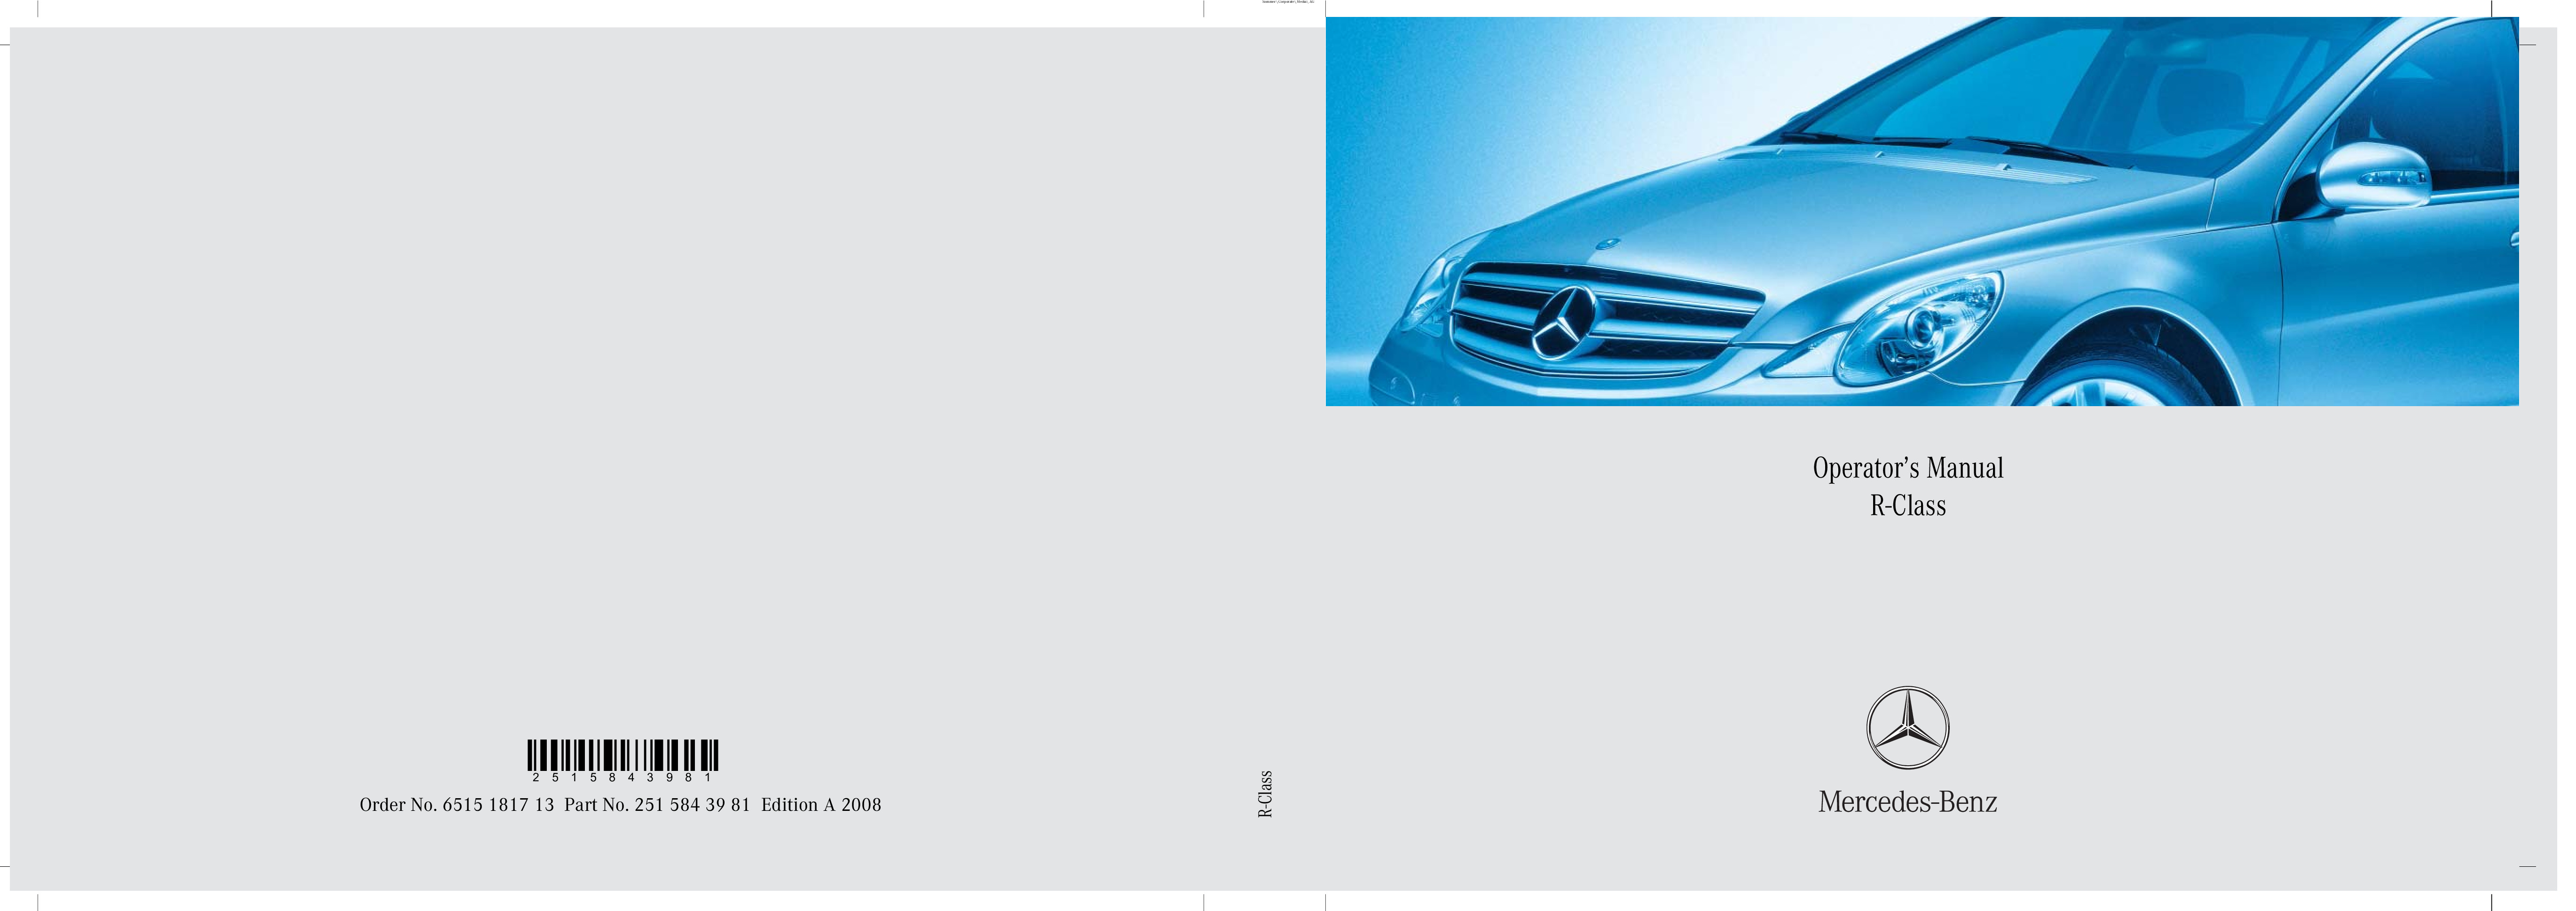 2008 Mercedes-Benz R Class owners manual